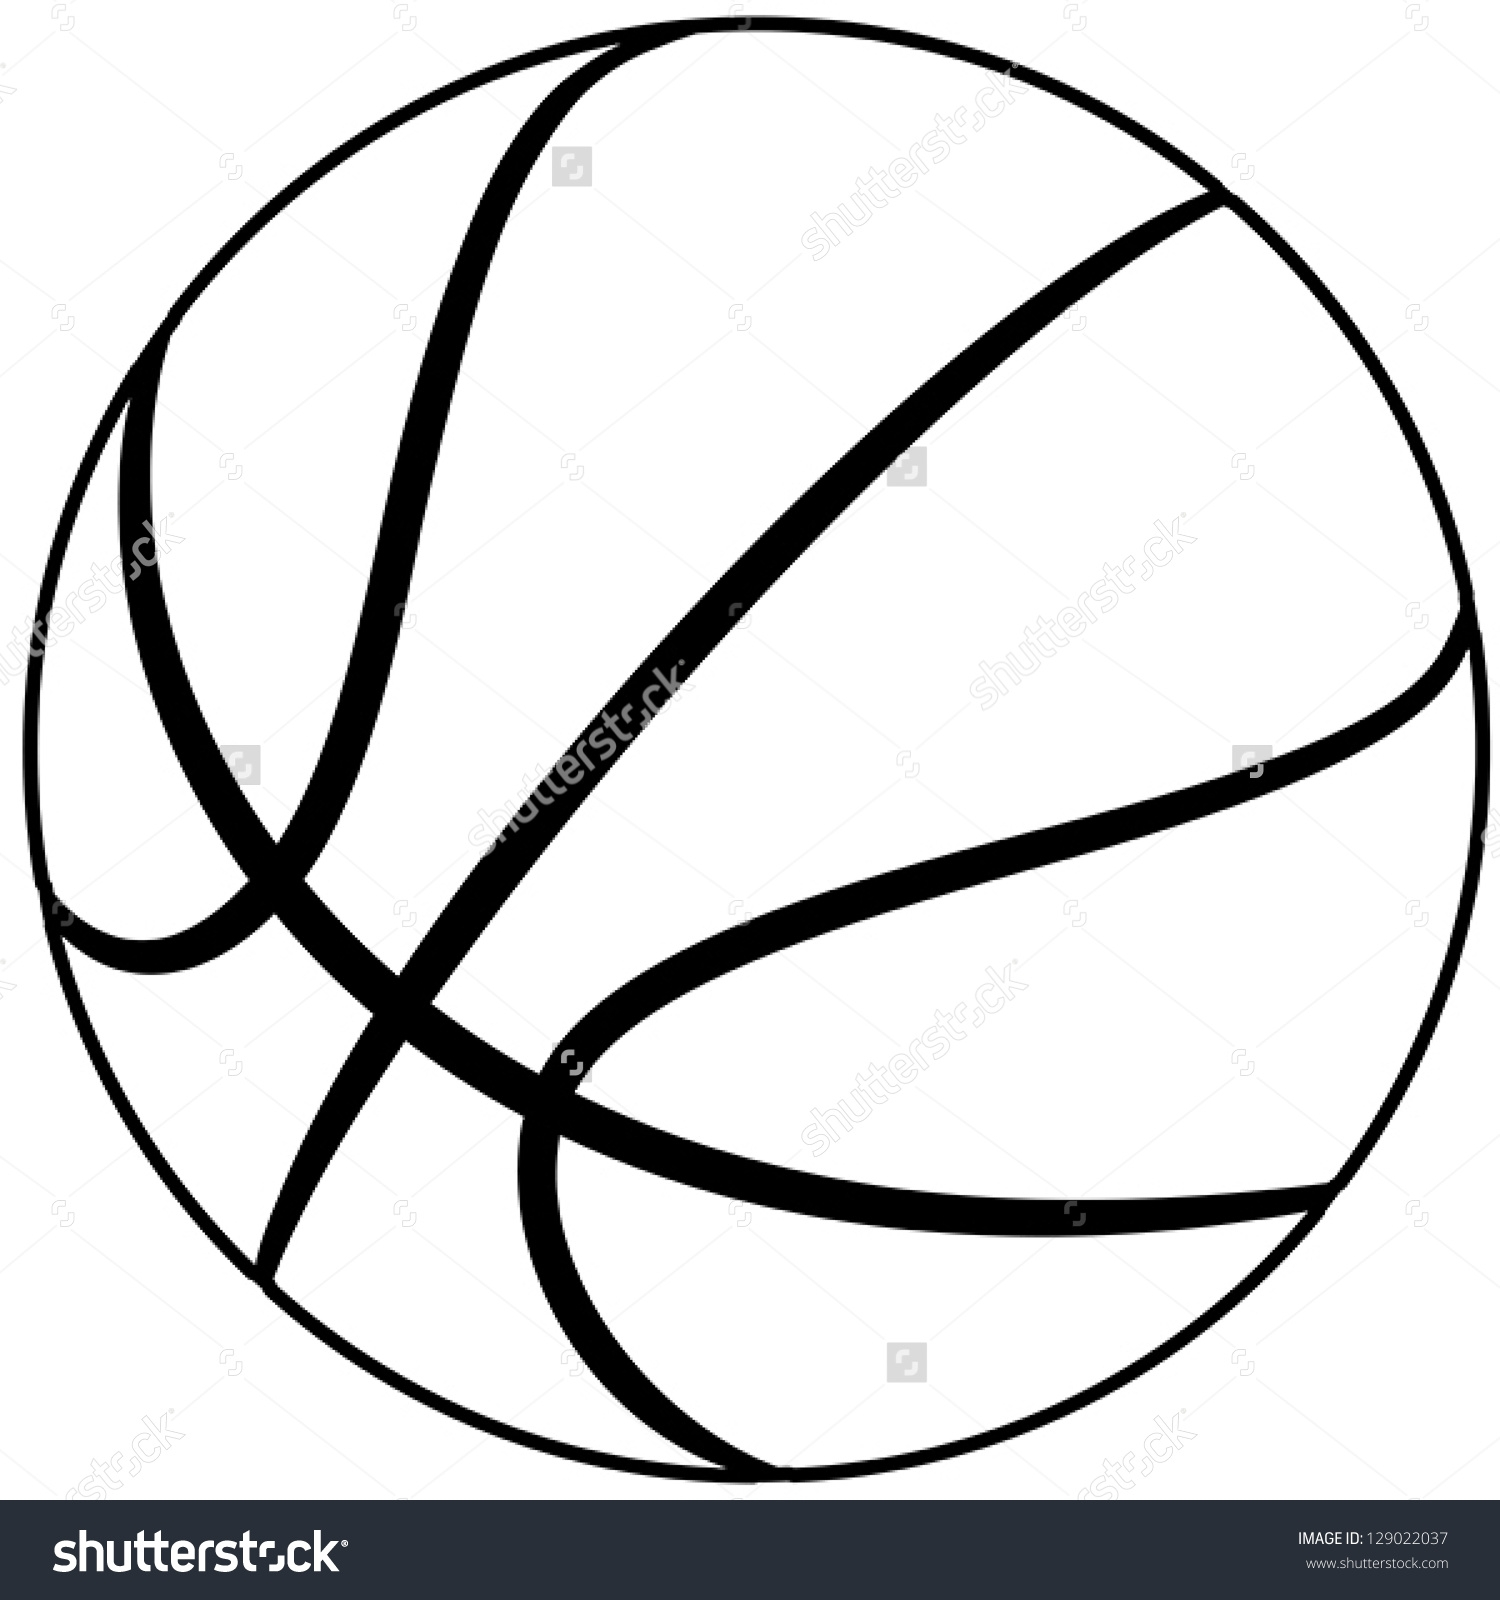 Basketball Outline Clip Art Pictures to Pin on Pinterest.